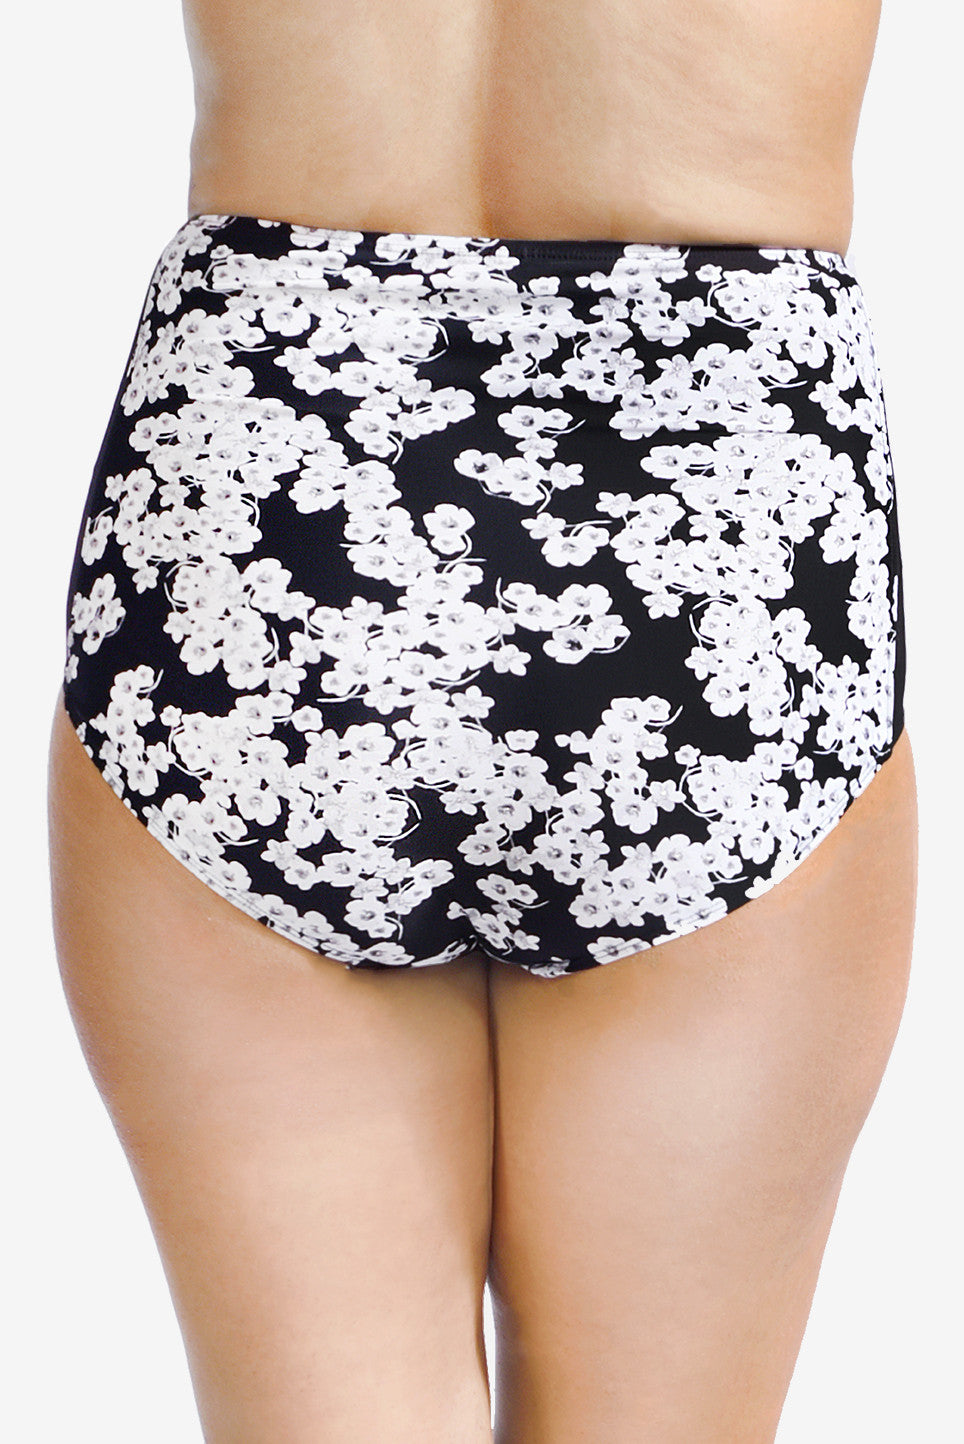 02216a7b25d33 ... Ultra High Waist Printed Women's Plus Size Swimsuit Brief Bottom with  Power Mesh Panel by Mazu ...